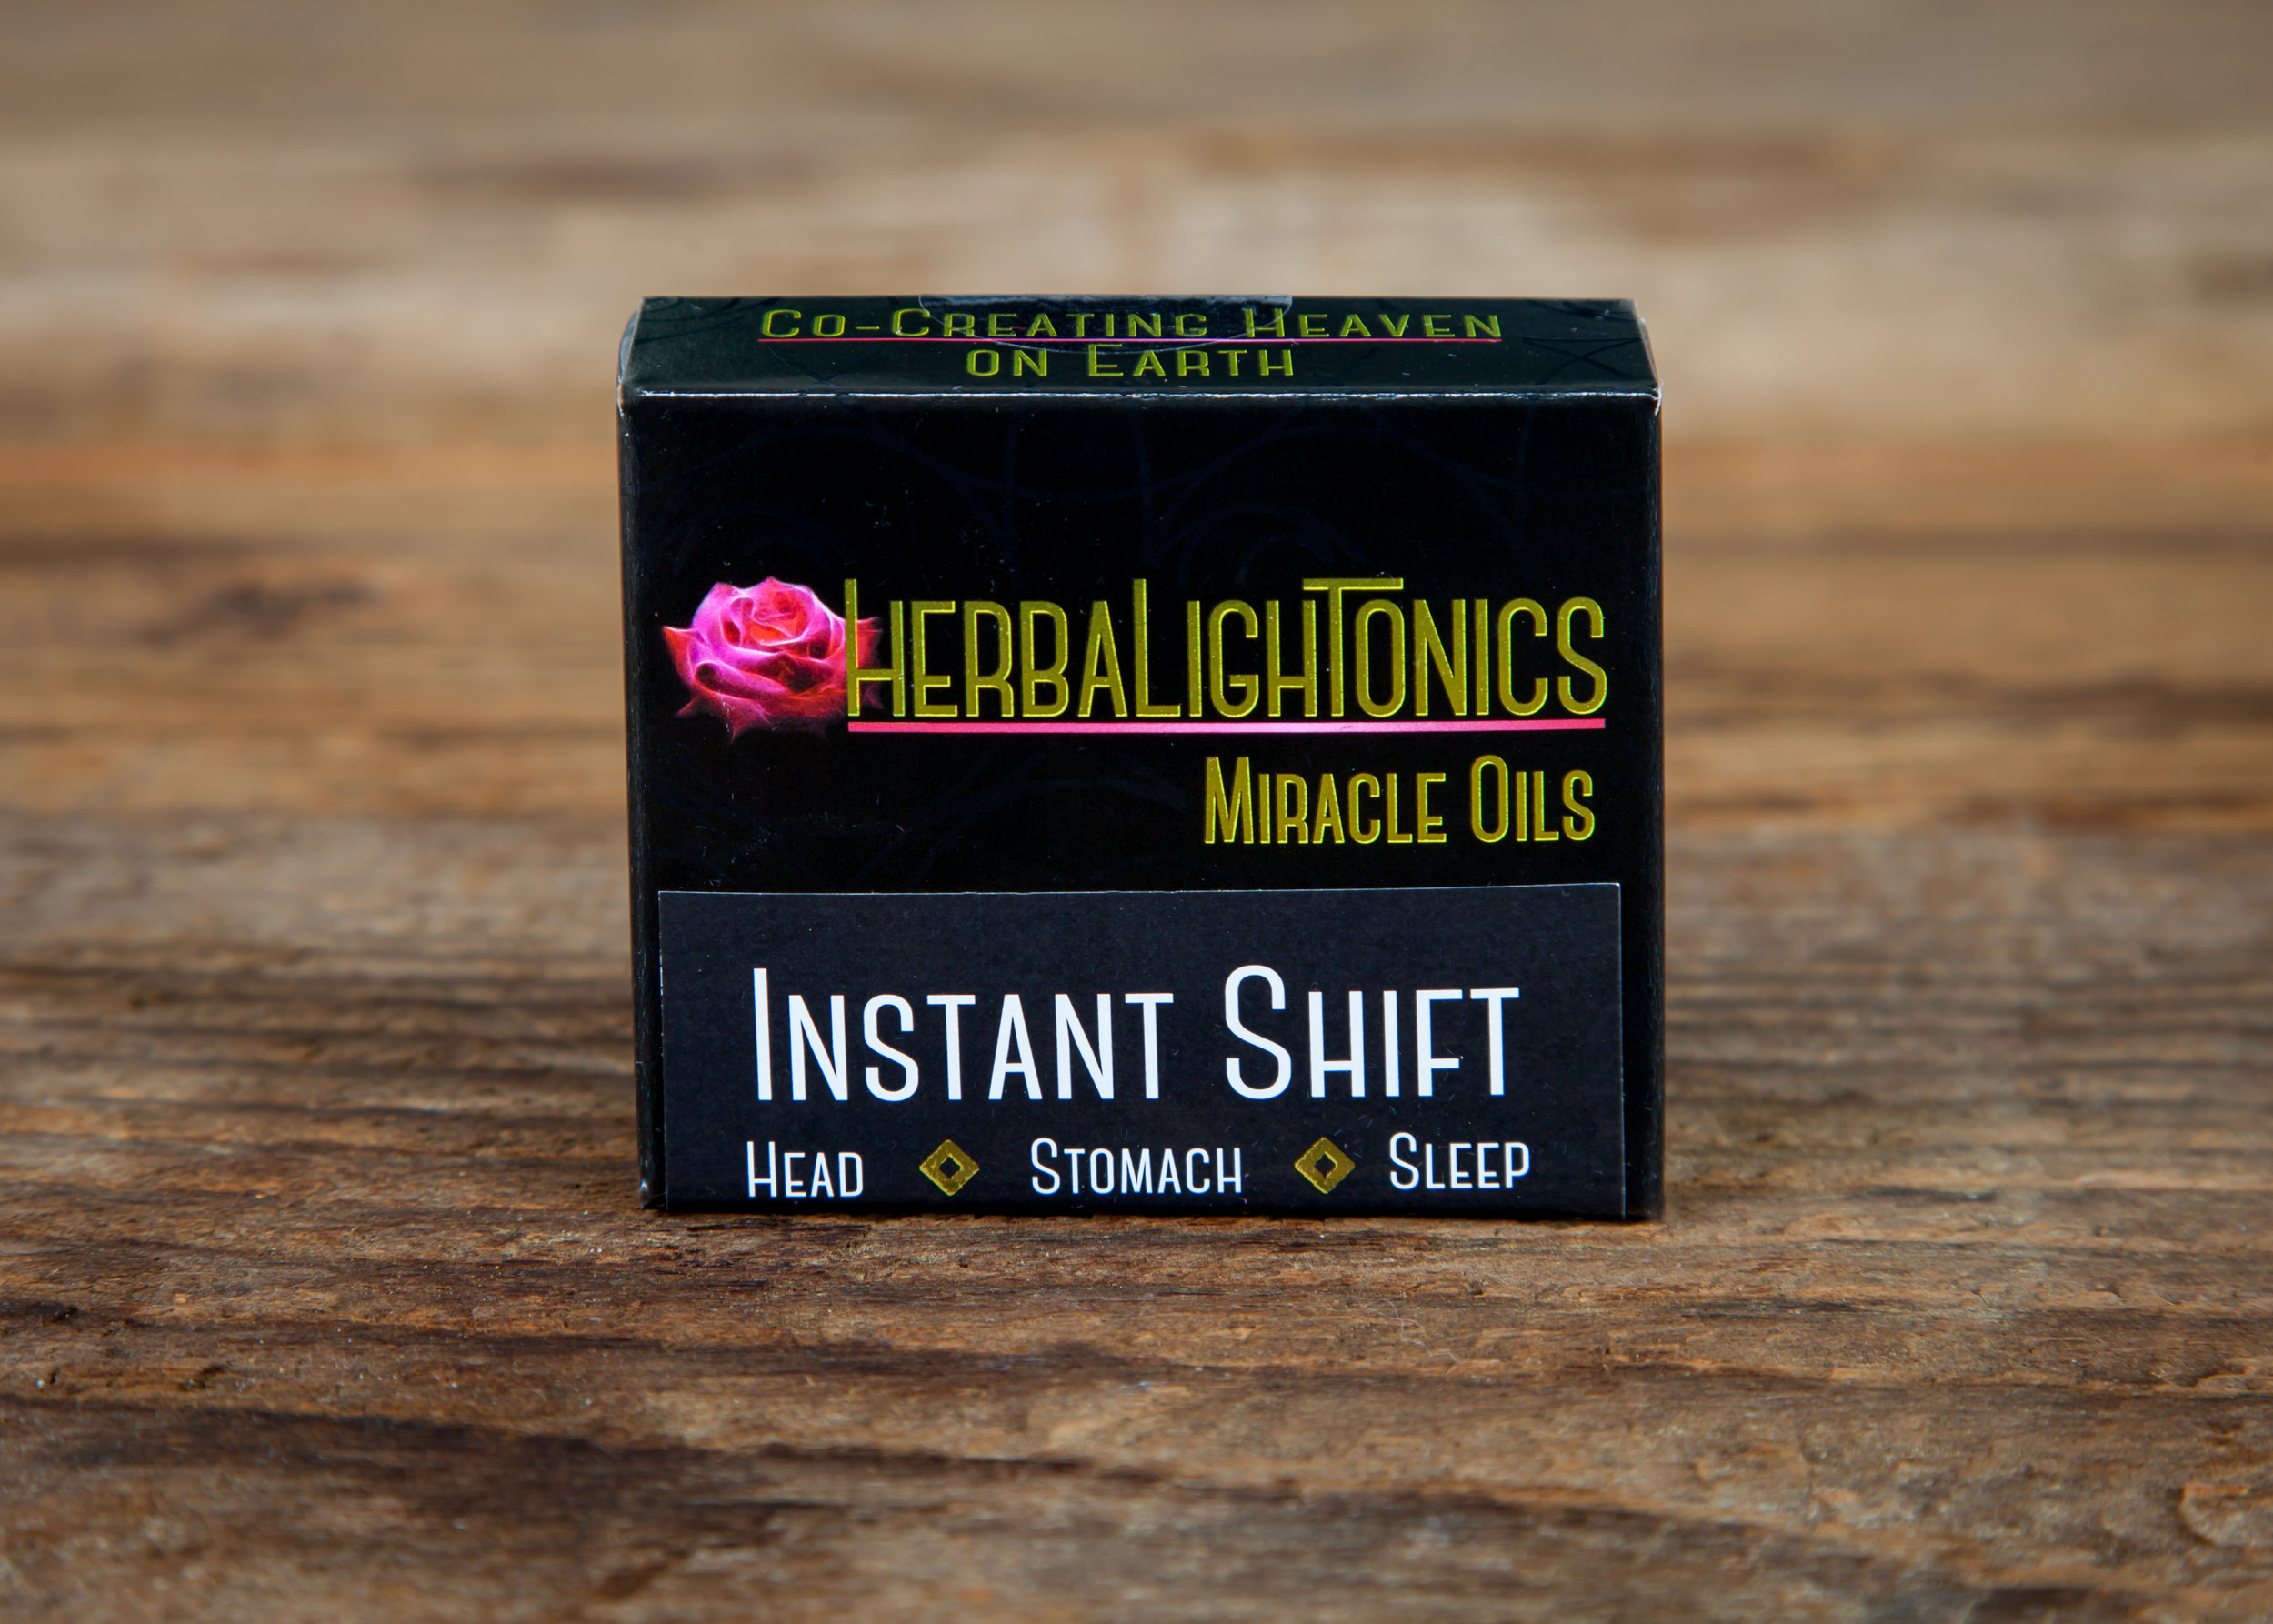 INSTANT SHIFT KIT - 3 MIRACLE OILS